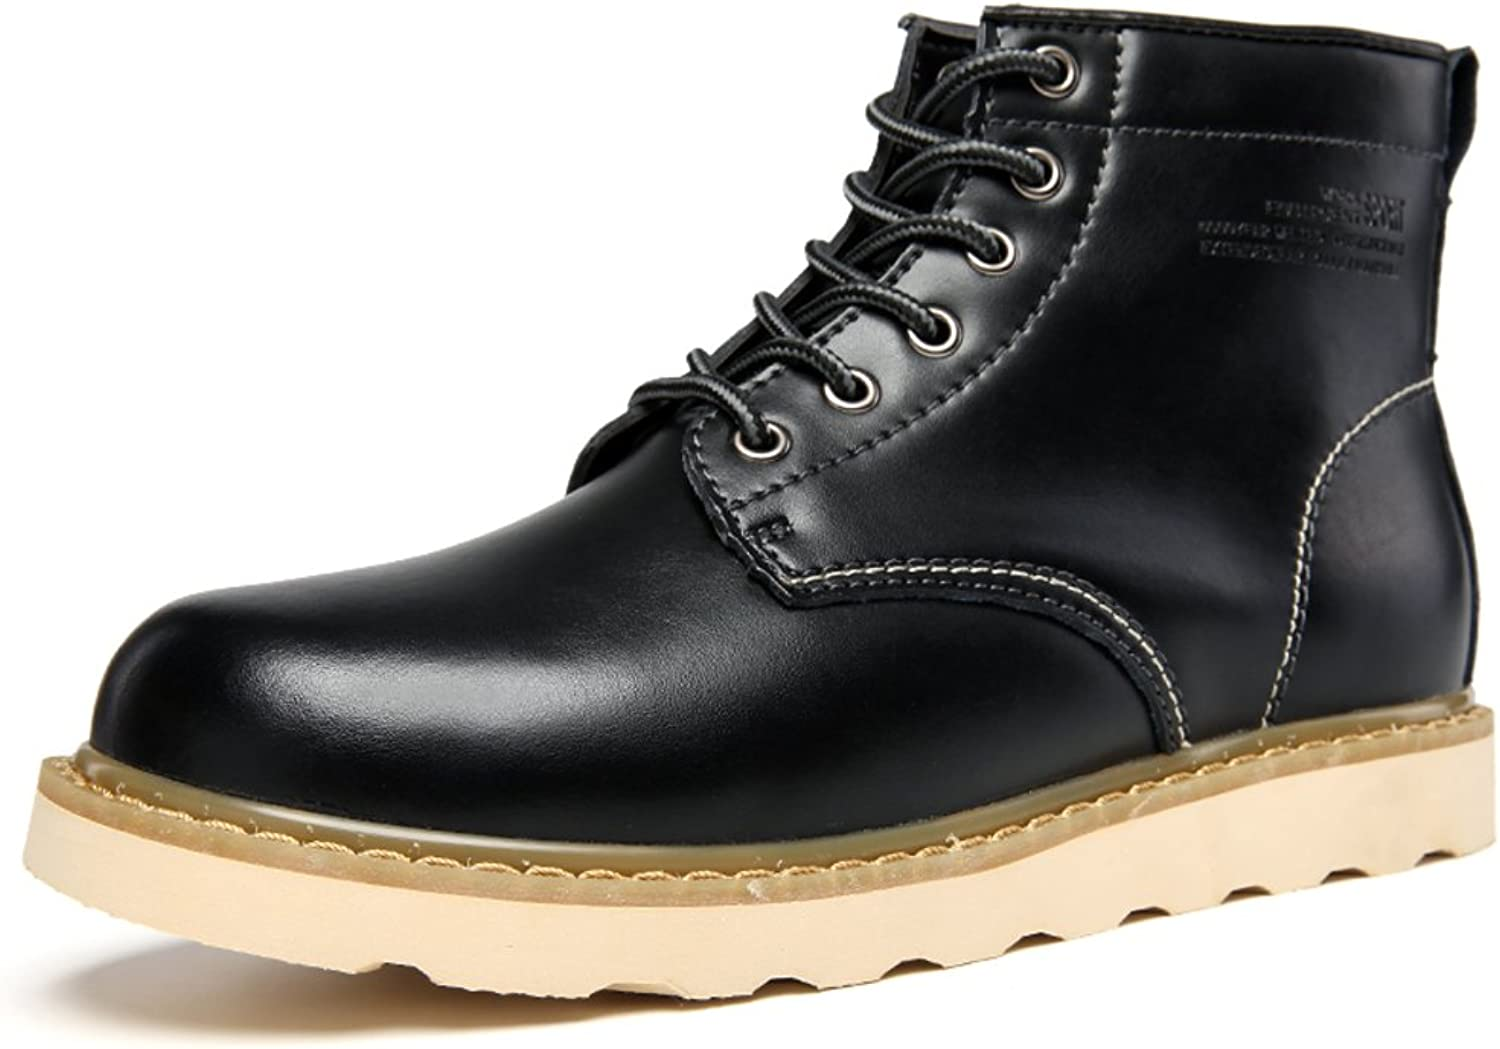 WLJSLLZYQ Men's Martin Boots high Heel shoes Retro in Thick-Soled Footwear Working shoes